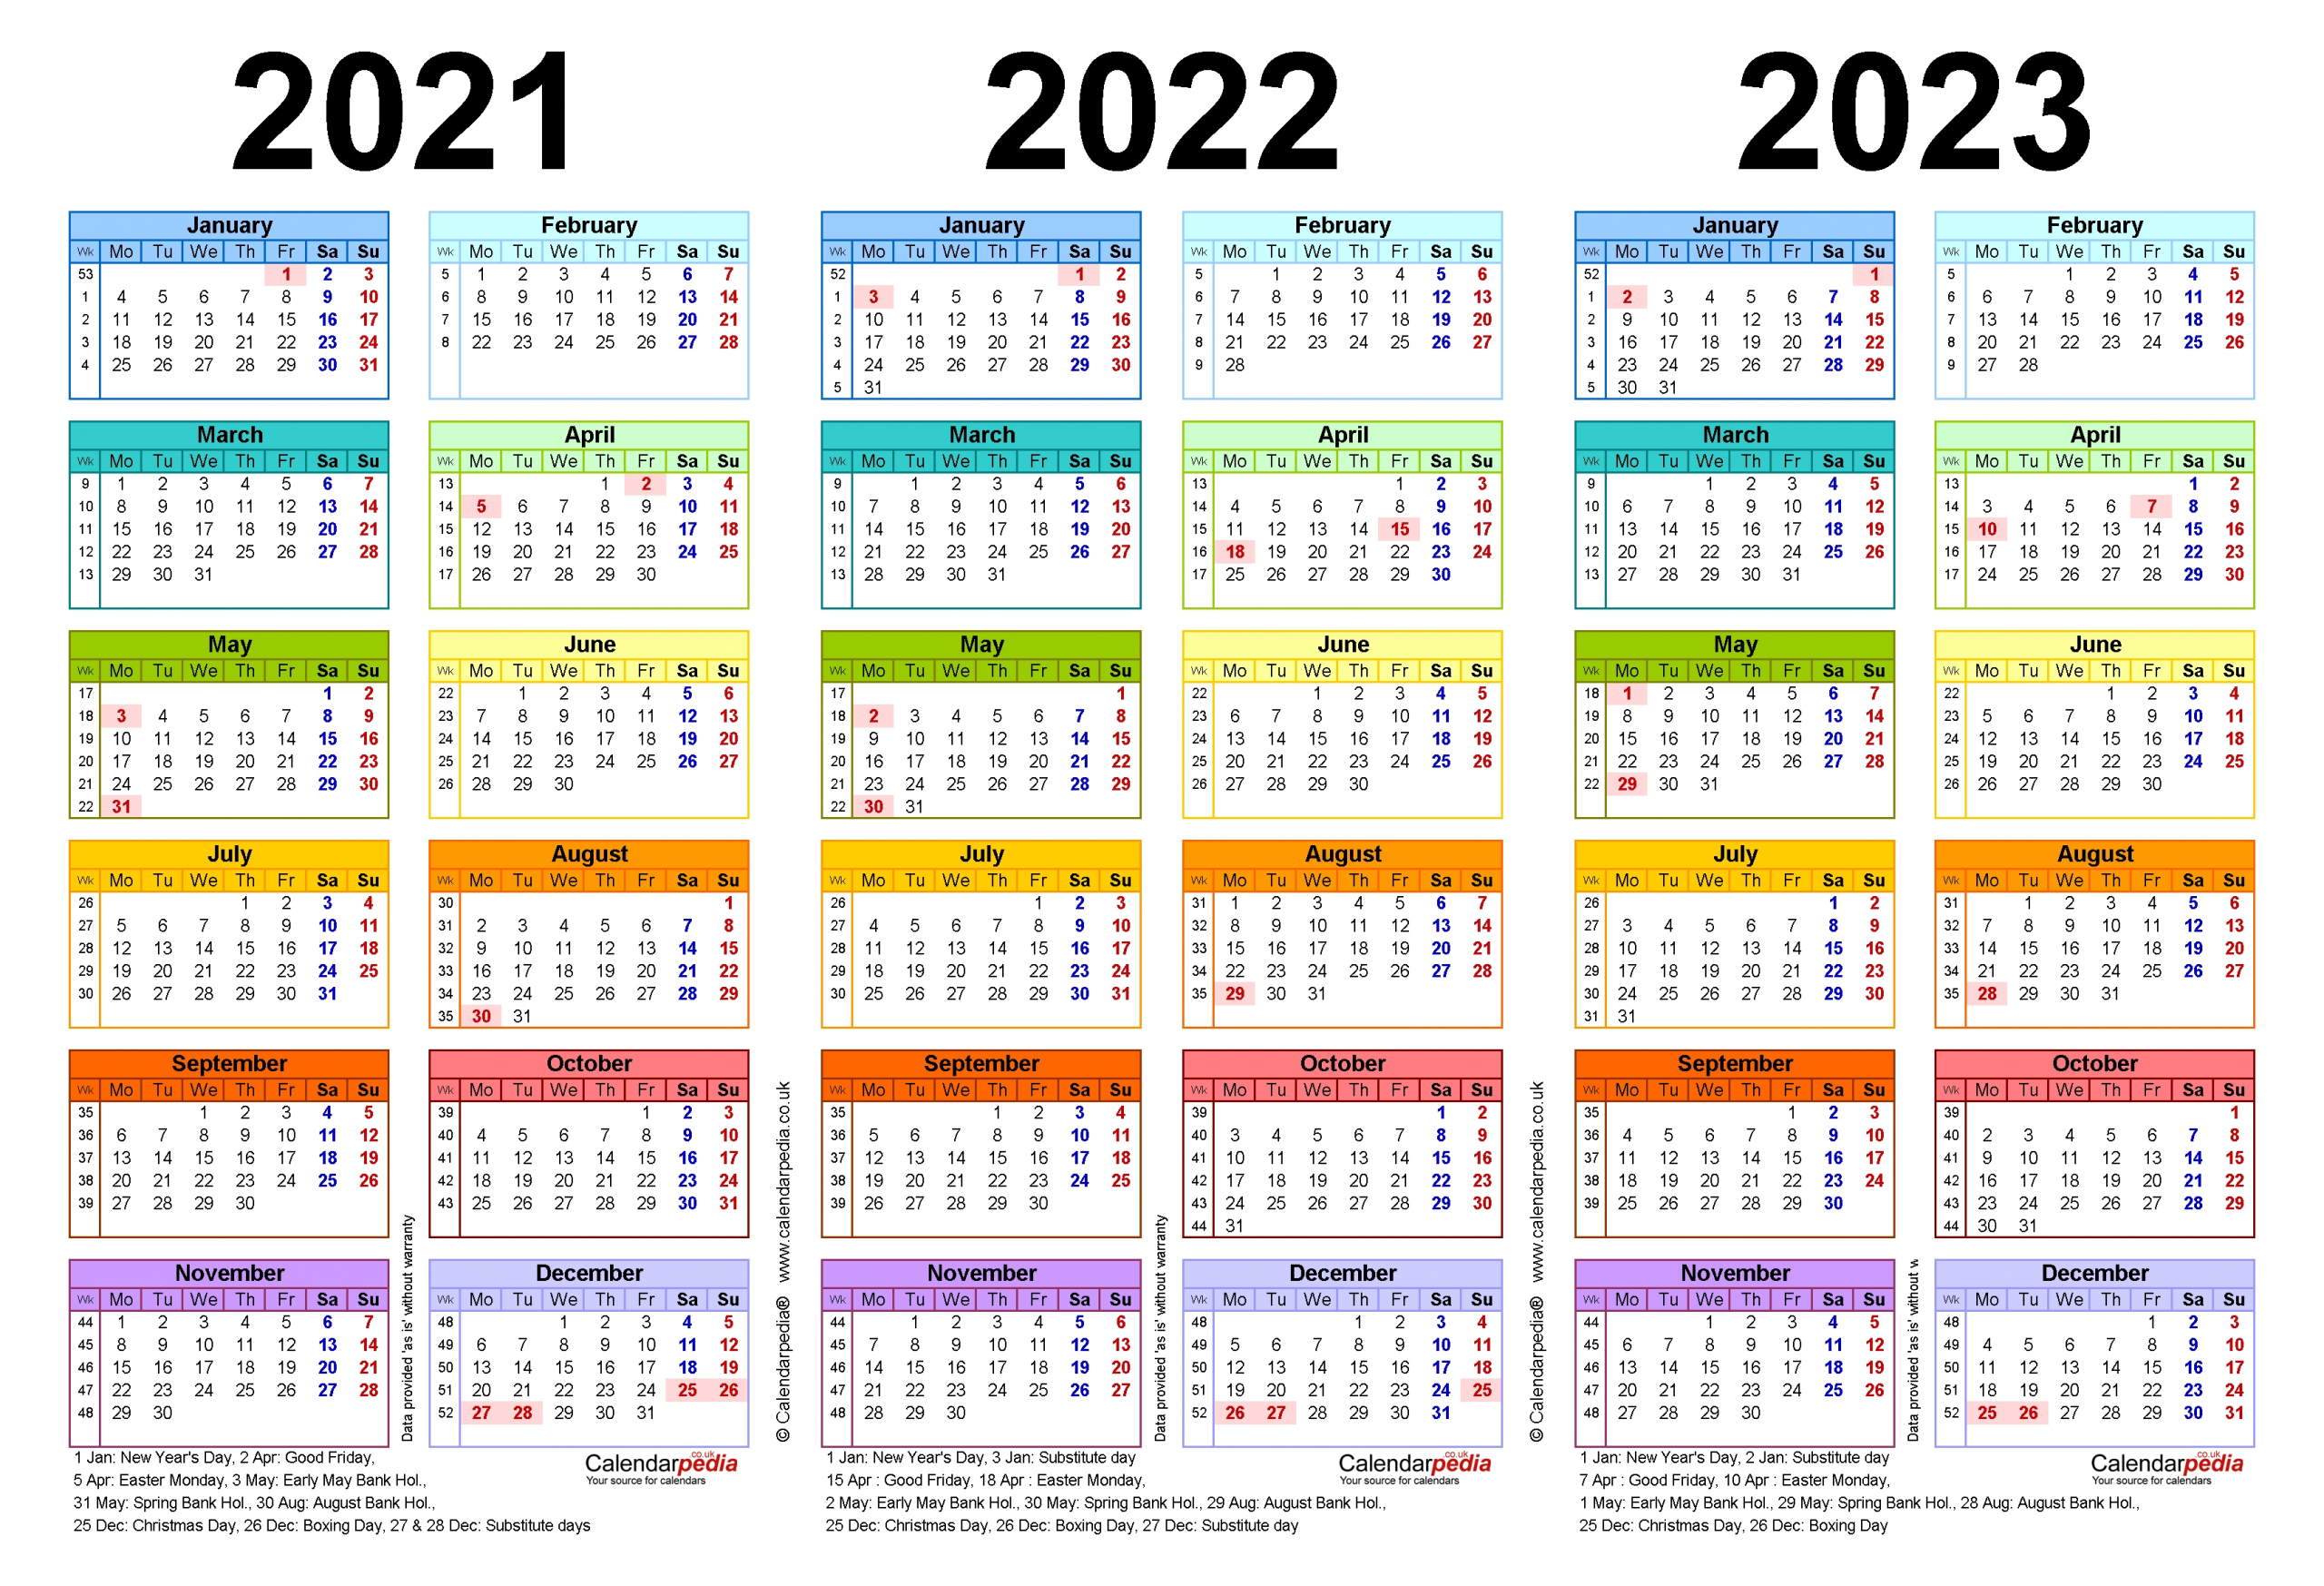 Three Year Calendars For 2021, 2022 & 2023 (Uk) For Word